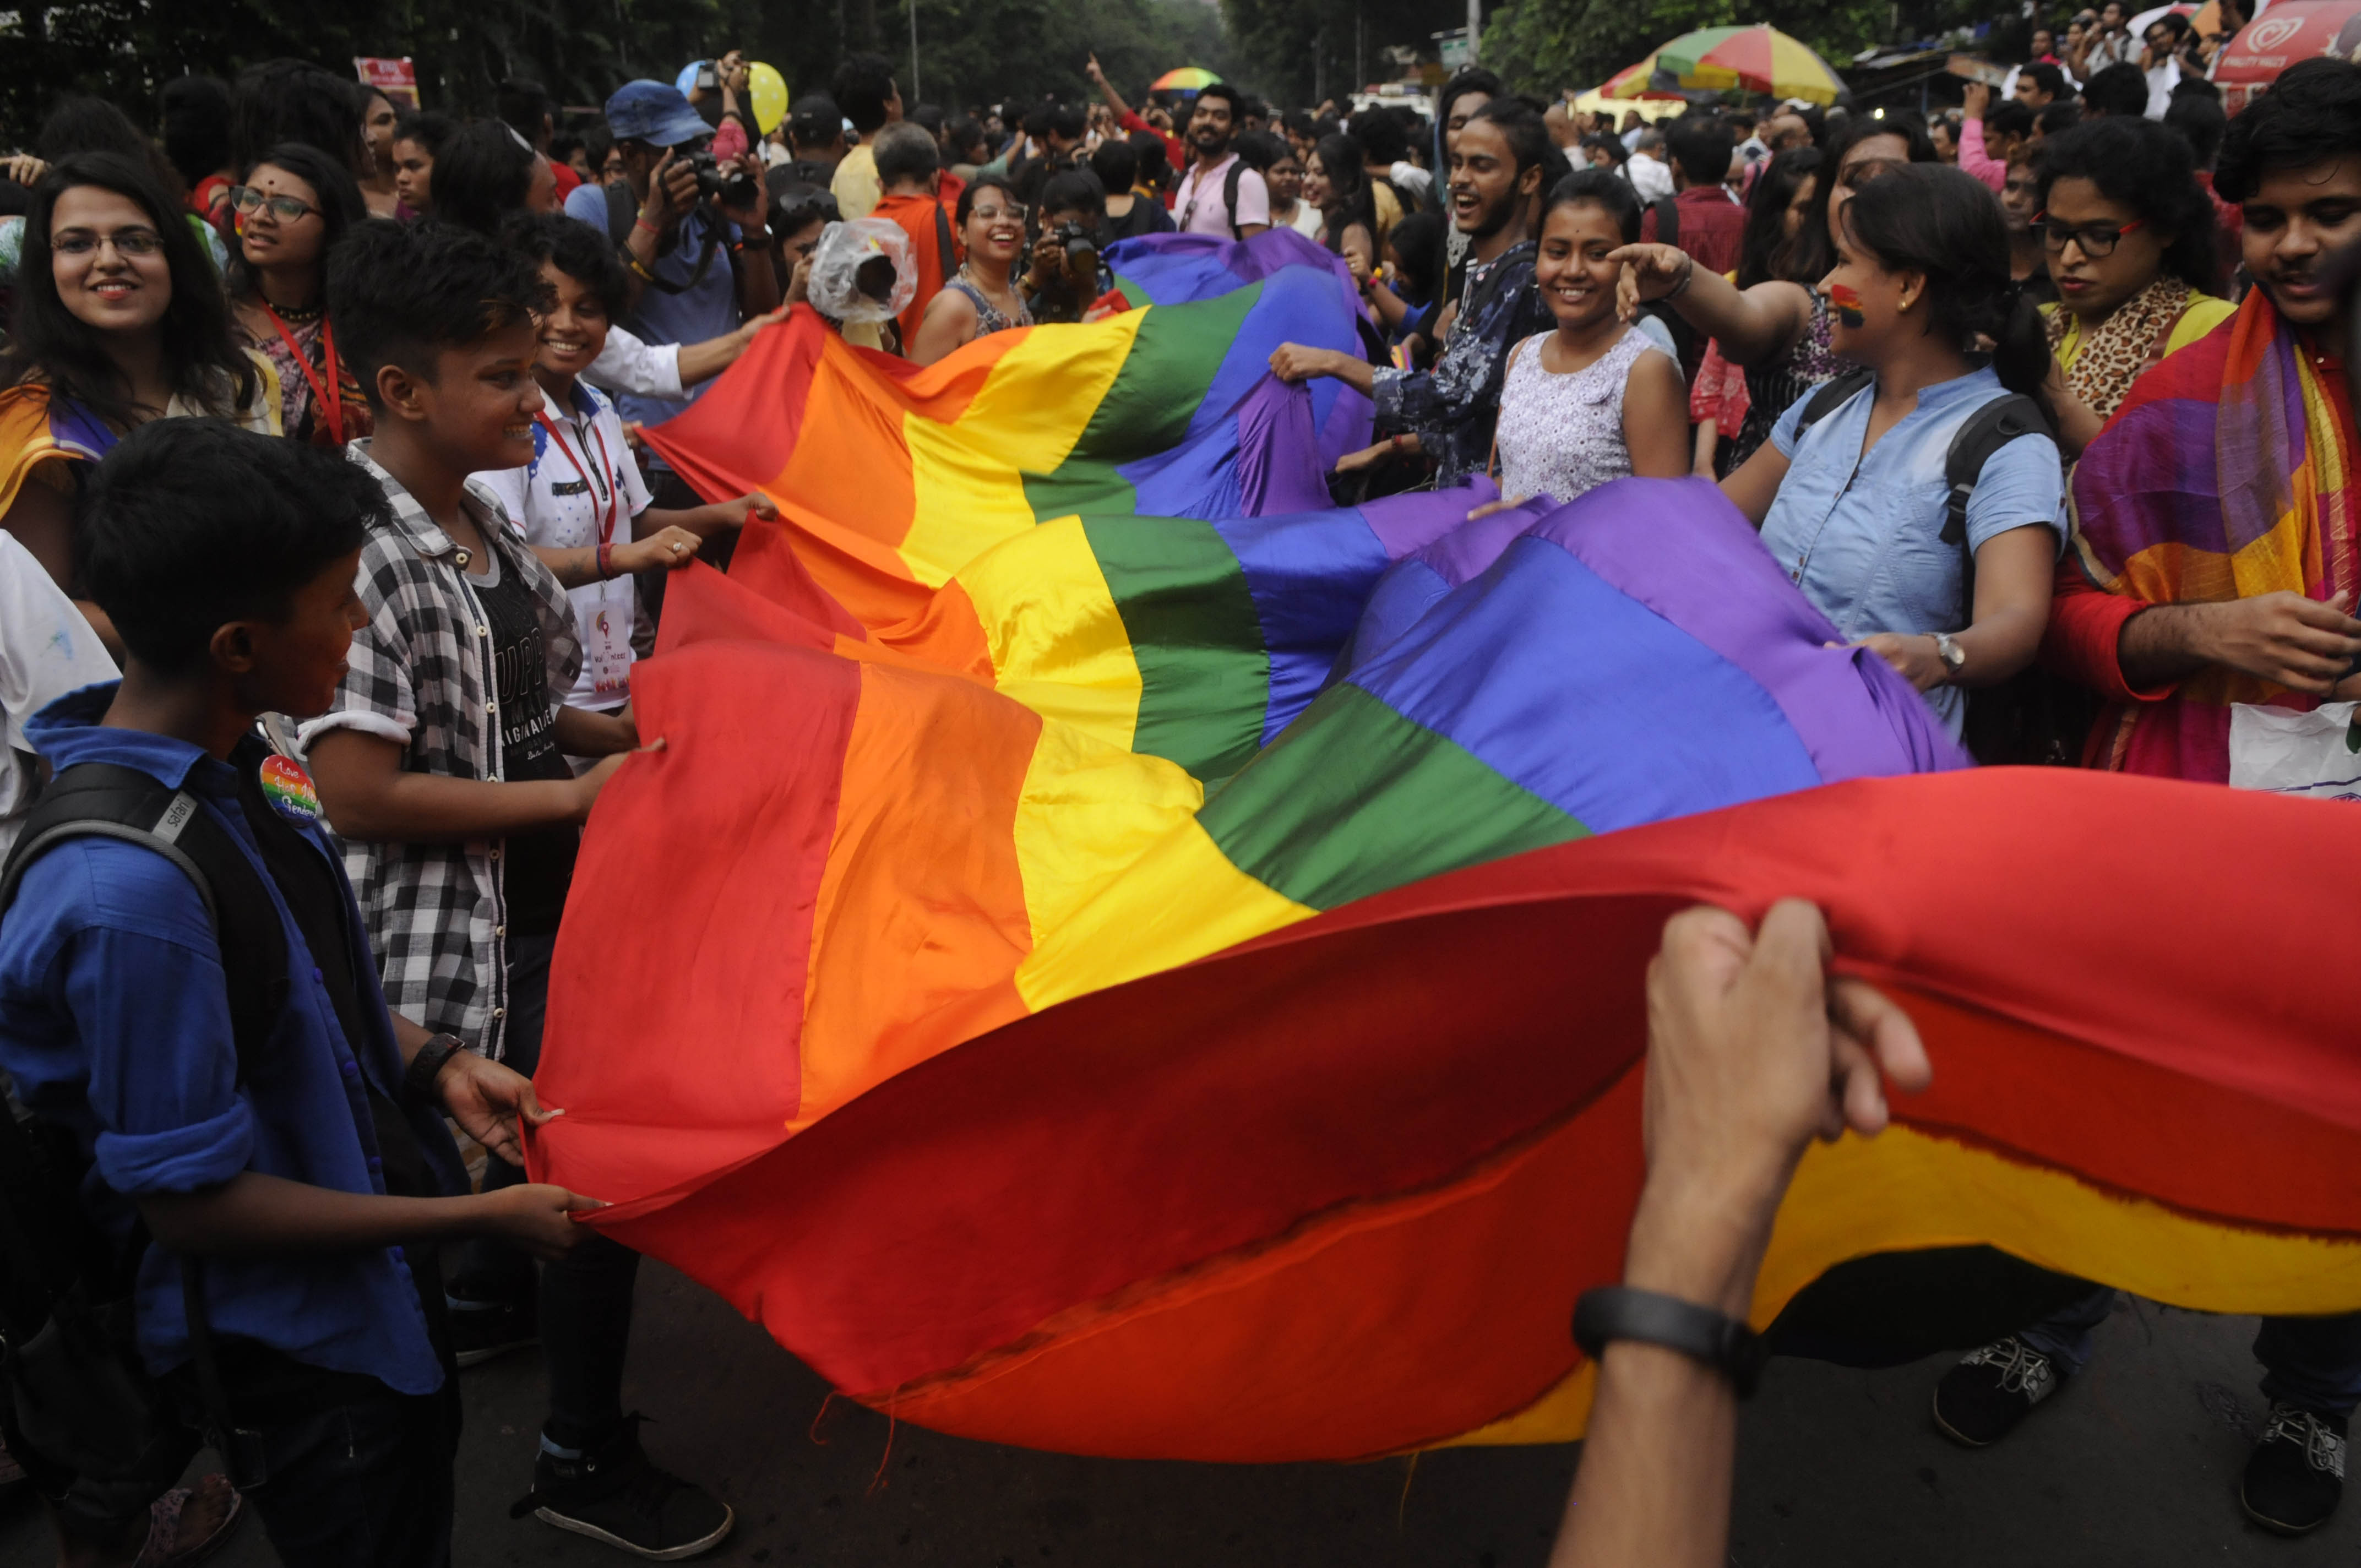 Members of LGBTQ community in Kolkata celebrate the decision by the Indian supreme court to decriminalize same-sex relationships on Sept. 6, 2018.